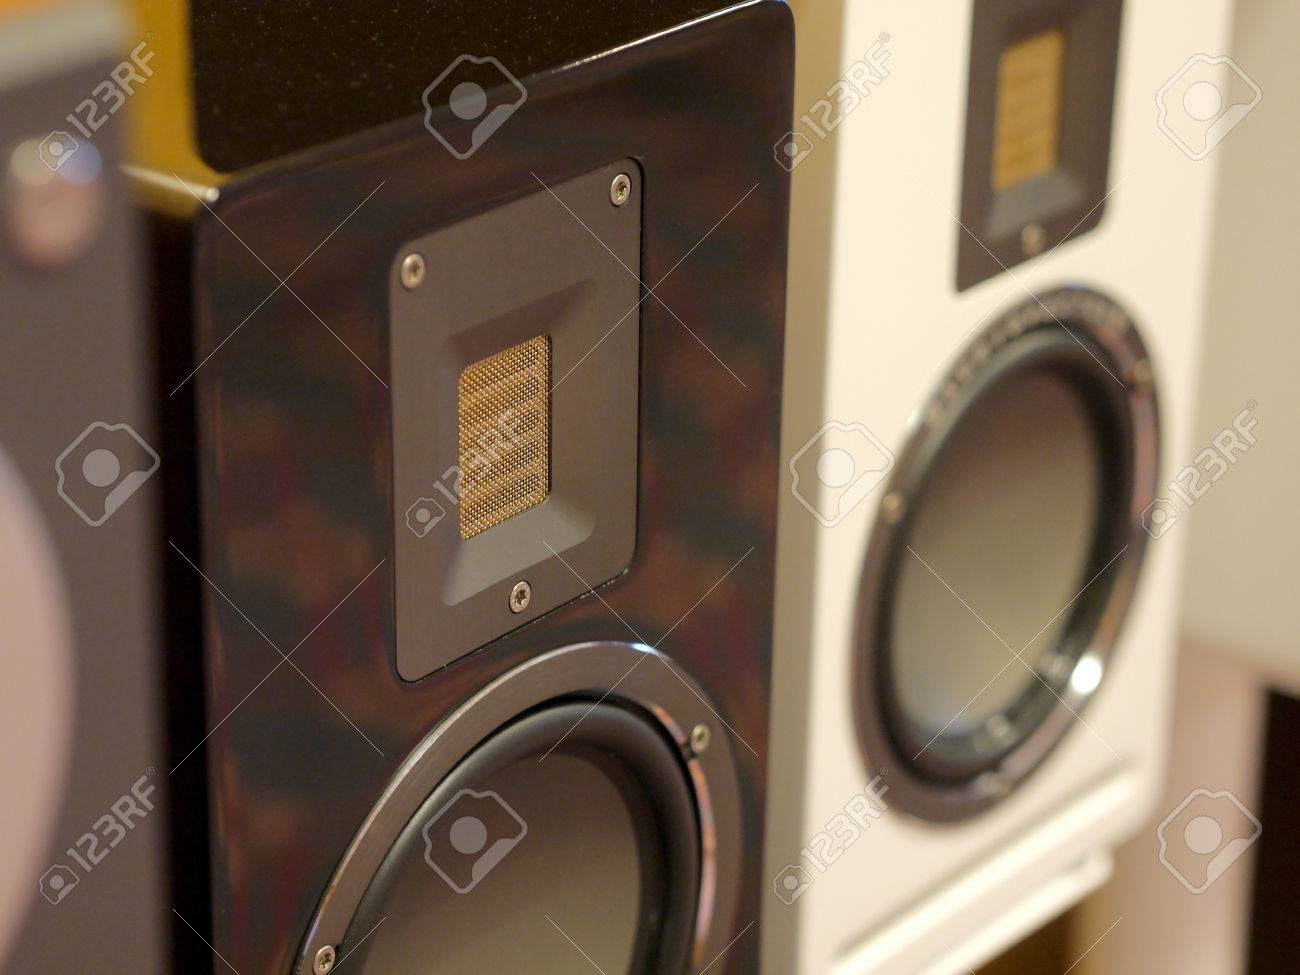 Stylish Speakers hi-fi stylish speakers. close-up view. stock photo, picture and